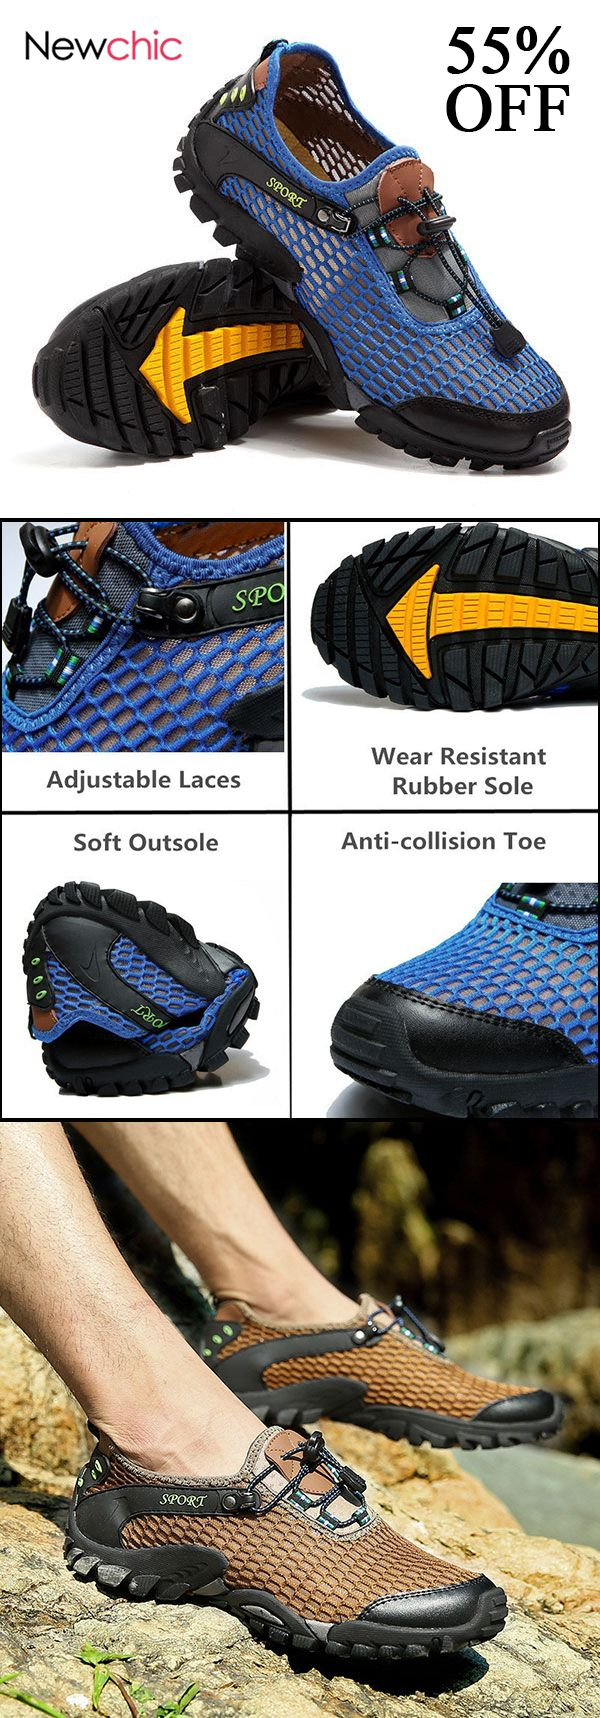 871b22591f6 [55%off]Men Lycra Mesh Breathable Outdoor Shock Absorption Hiking Shoes  #mensshoes #hiking #footwear